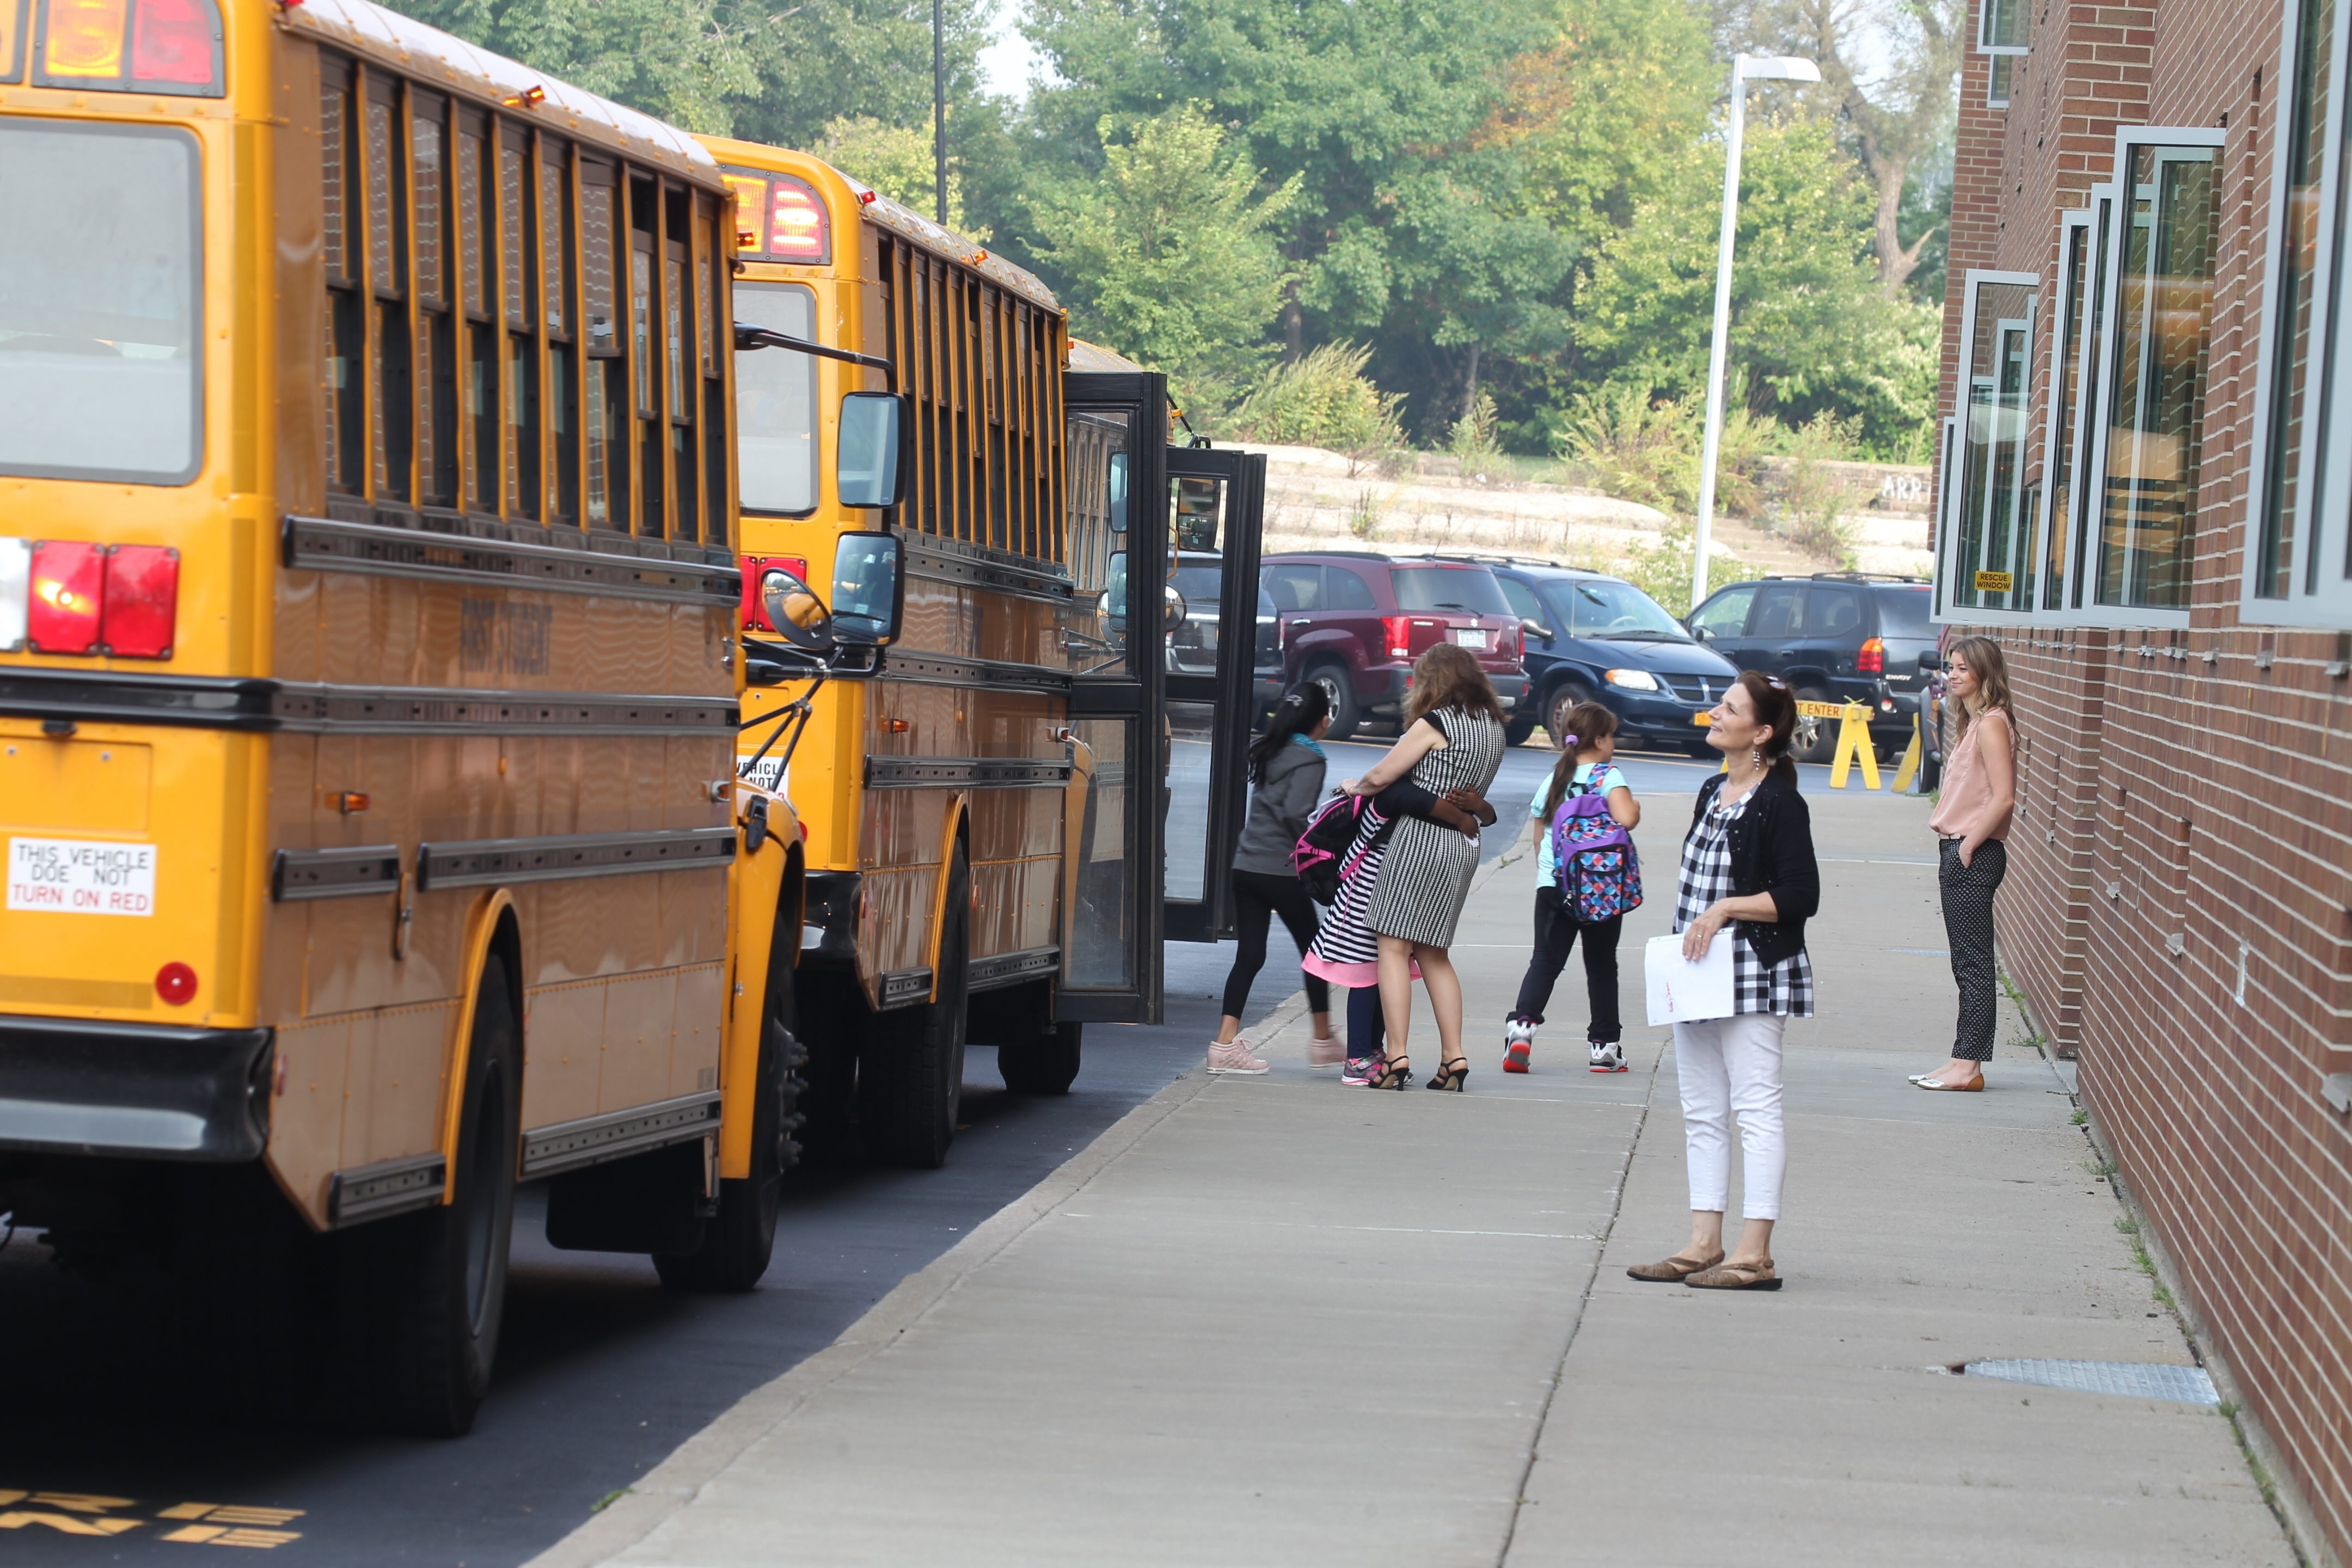 Children arrive on the first day of school at South Side Elementary and Pricipal Darlene Jesonowski gets a hug from a student Thursday,  Sept. 3, 2015.  (John Hickey/Buffalo News)